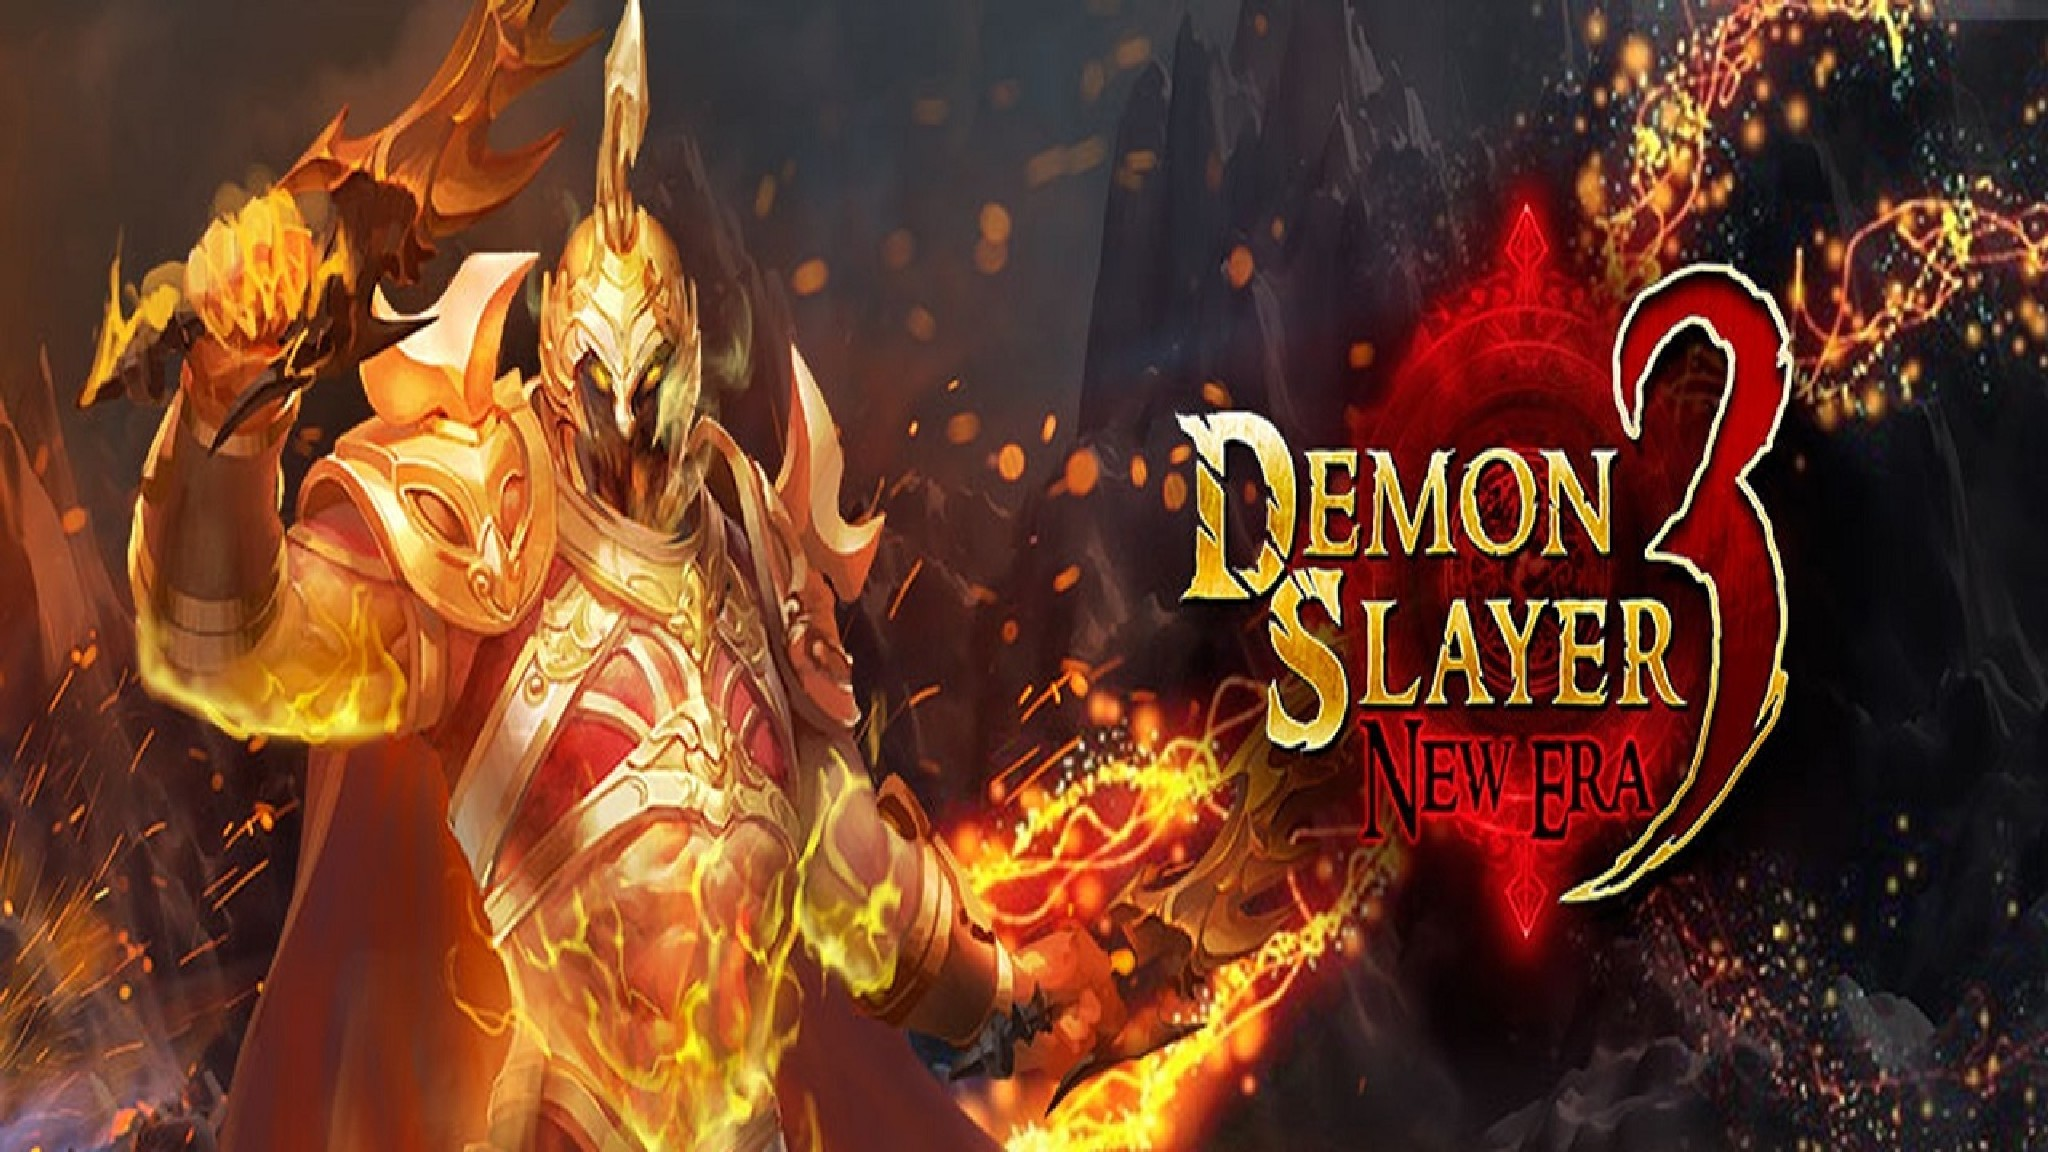 Играть Demon Slayer 3 онлайн в браузере